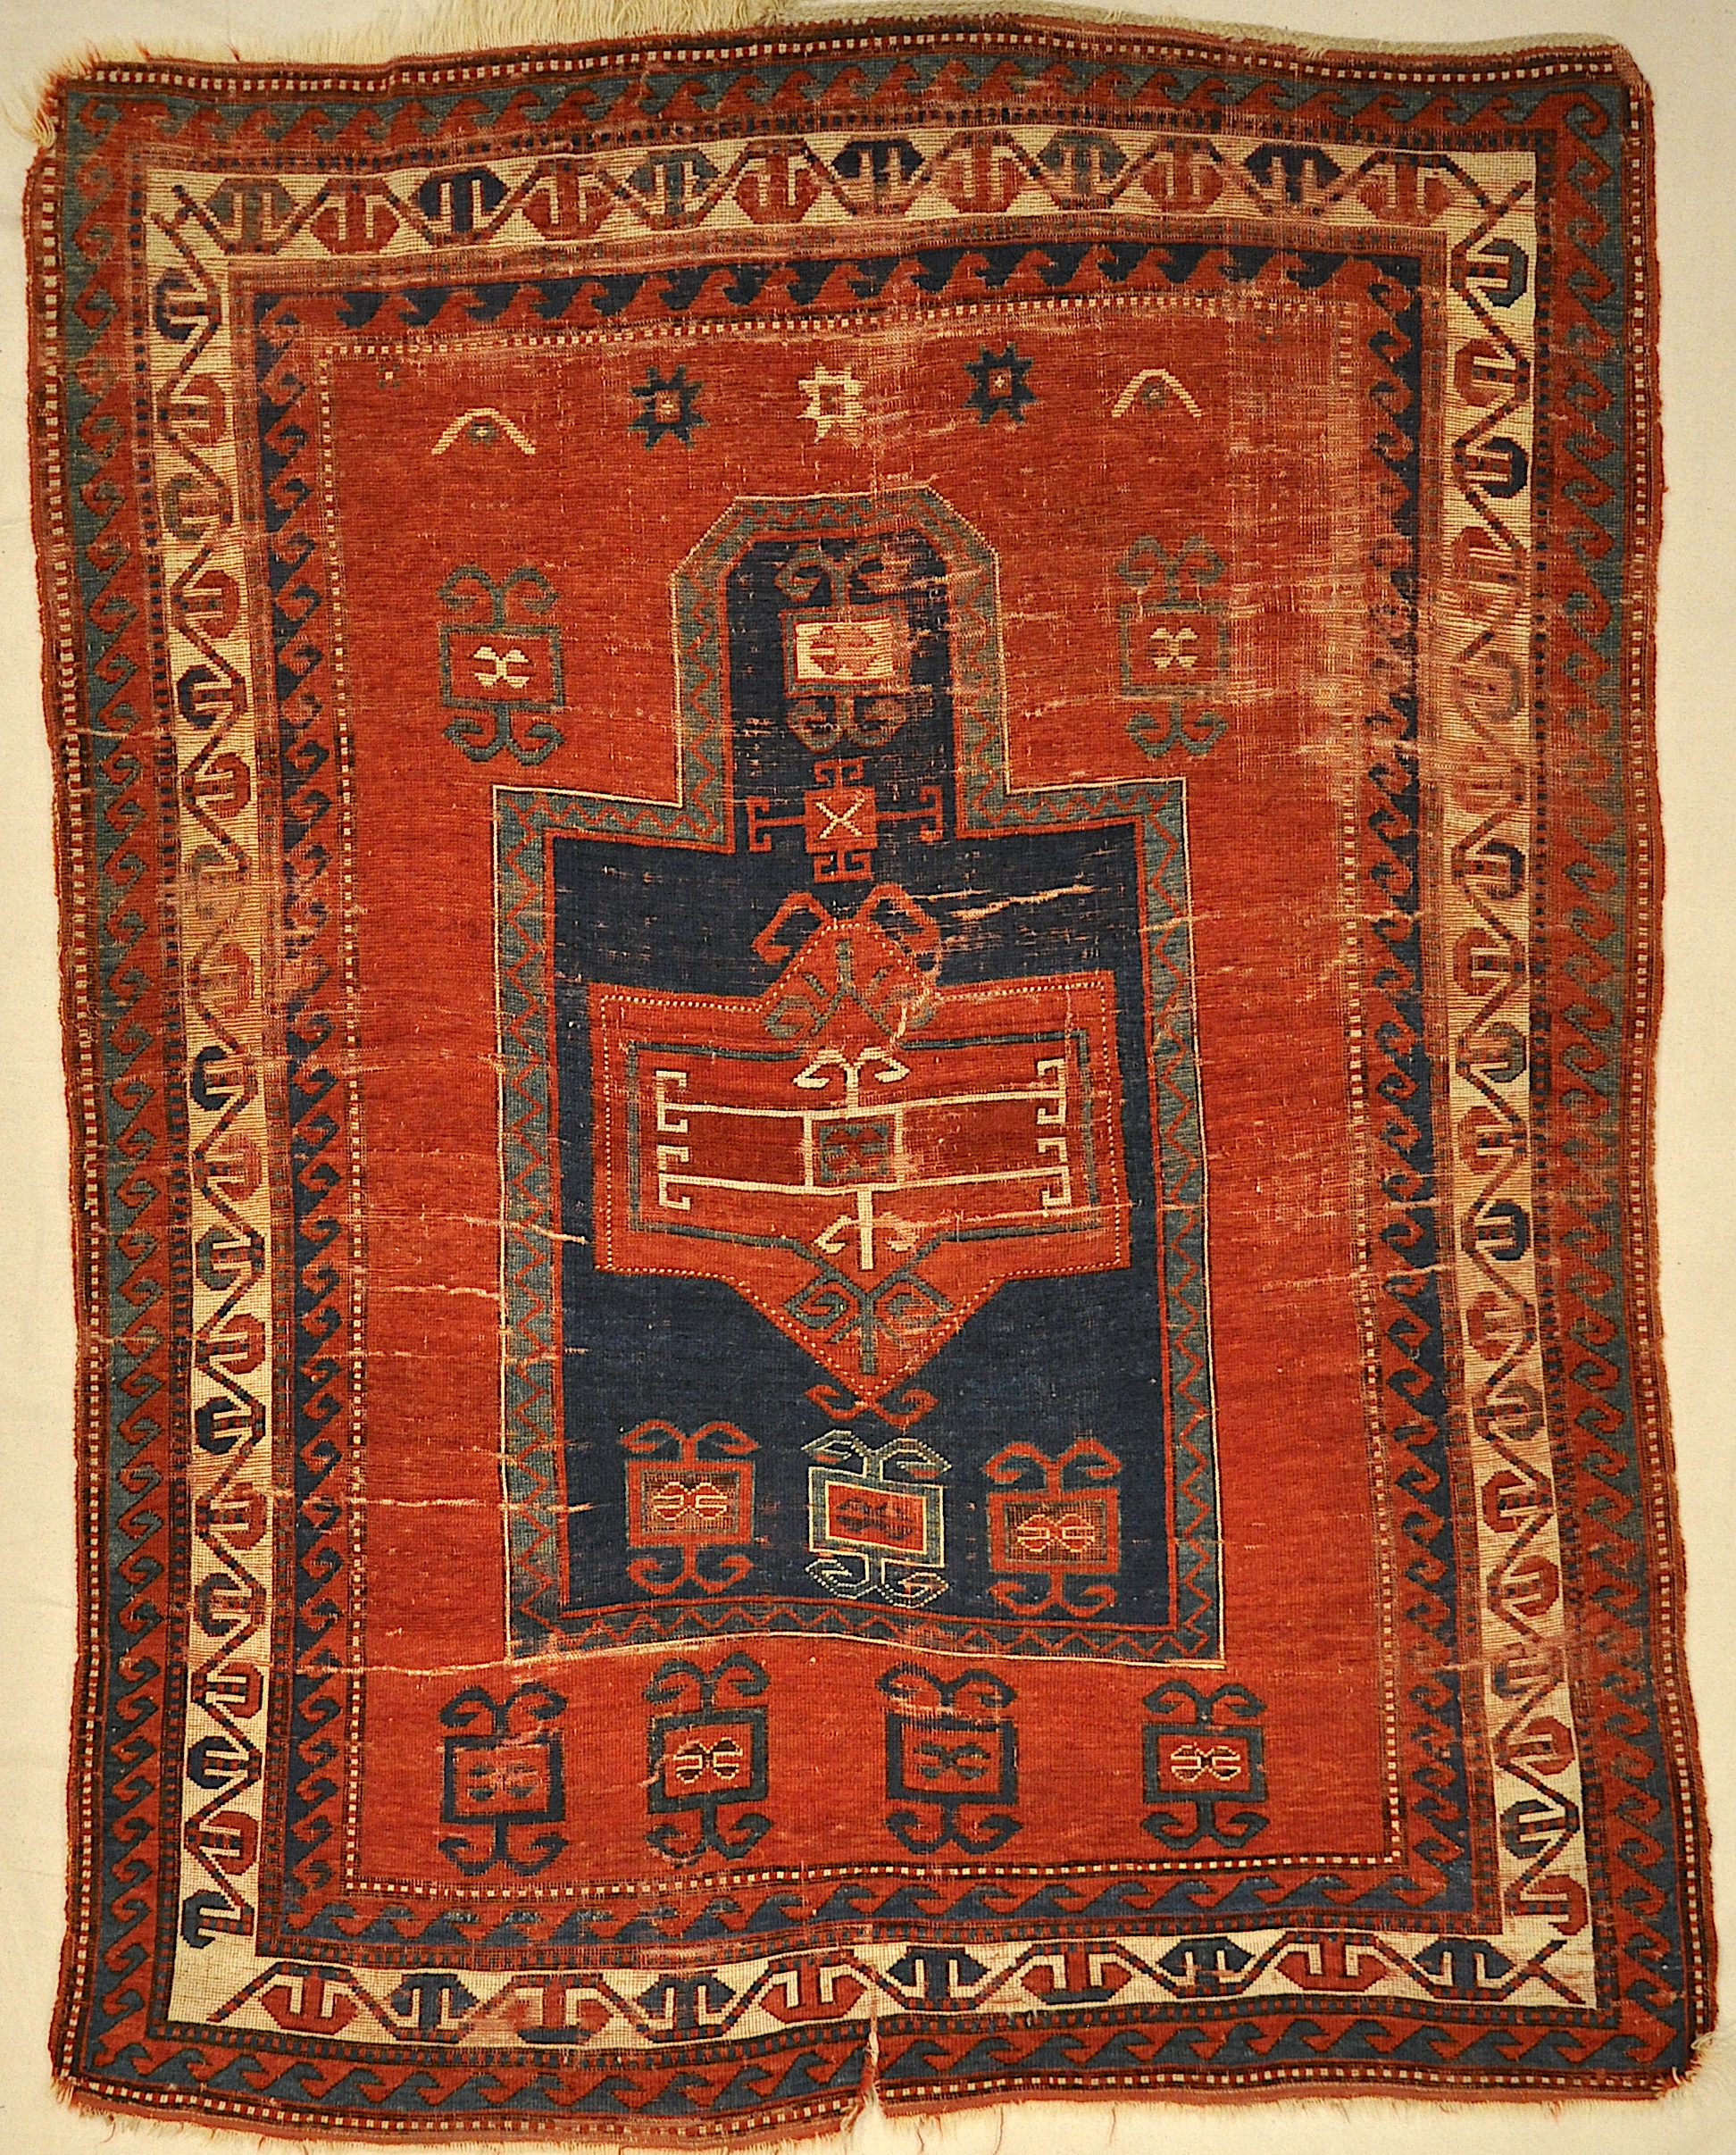 Antique Caucasian Fachralo Kazak Prayer Rug Authentic Genuine Woven Carpet Art Santa Barbara Design Center and Rugs and More